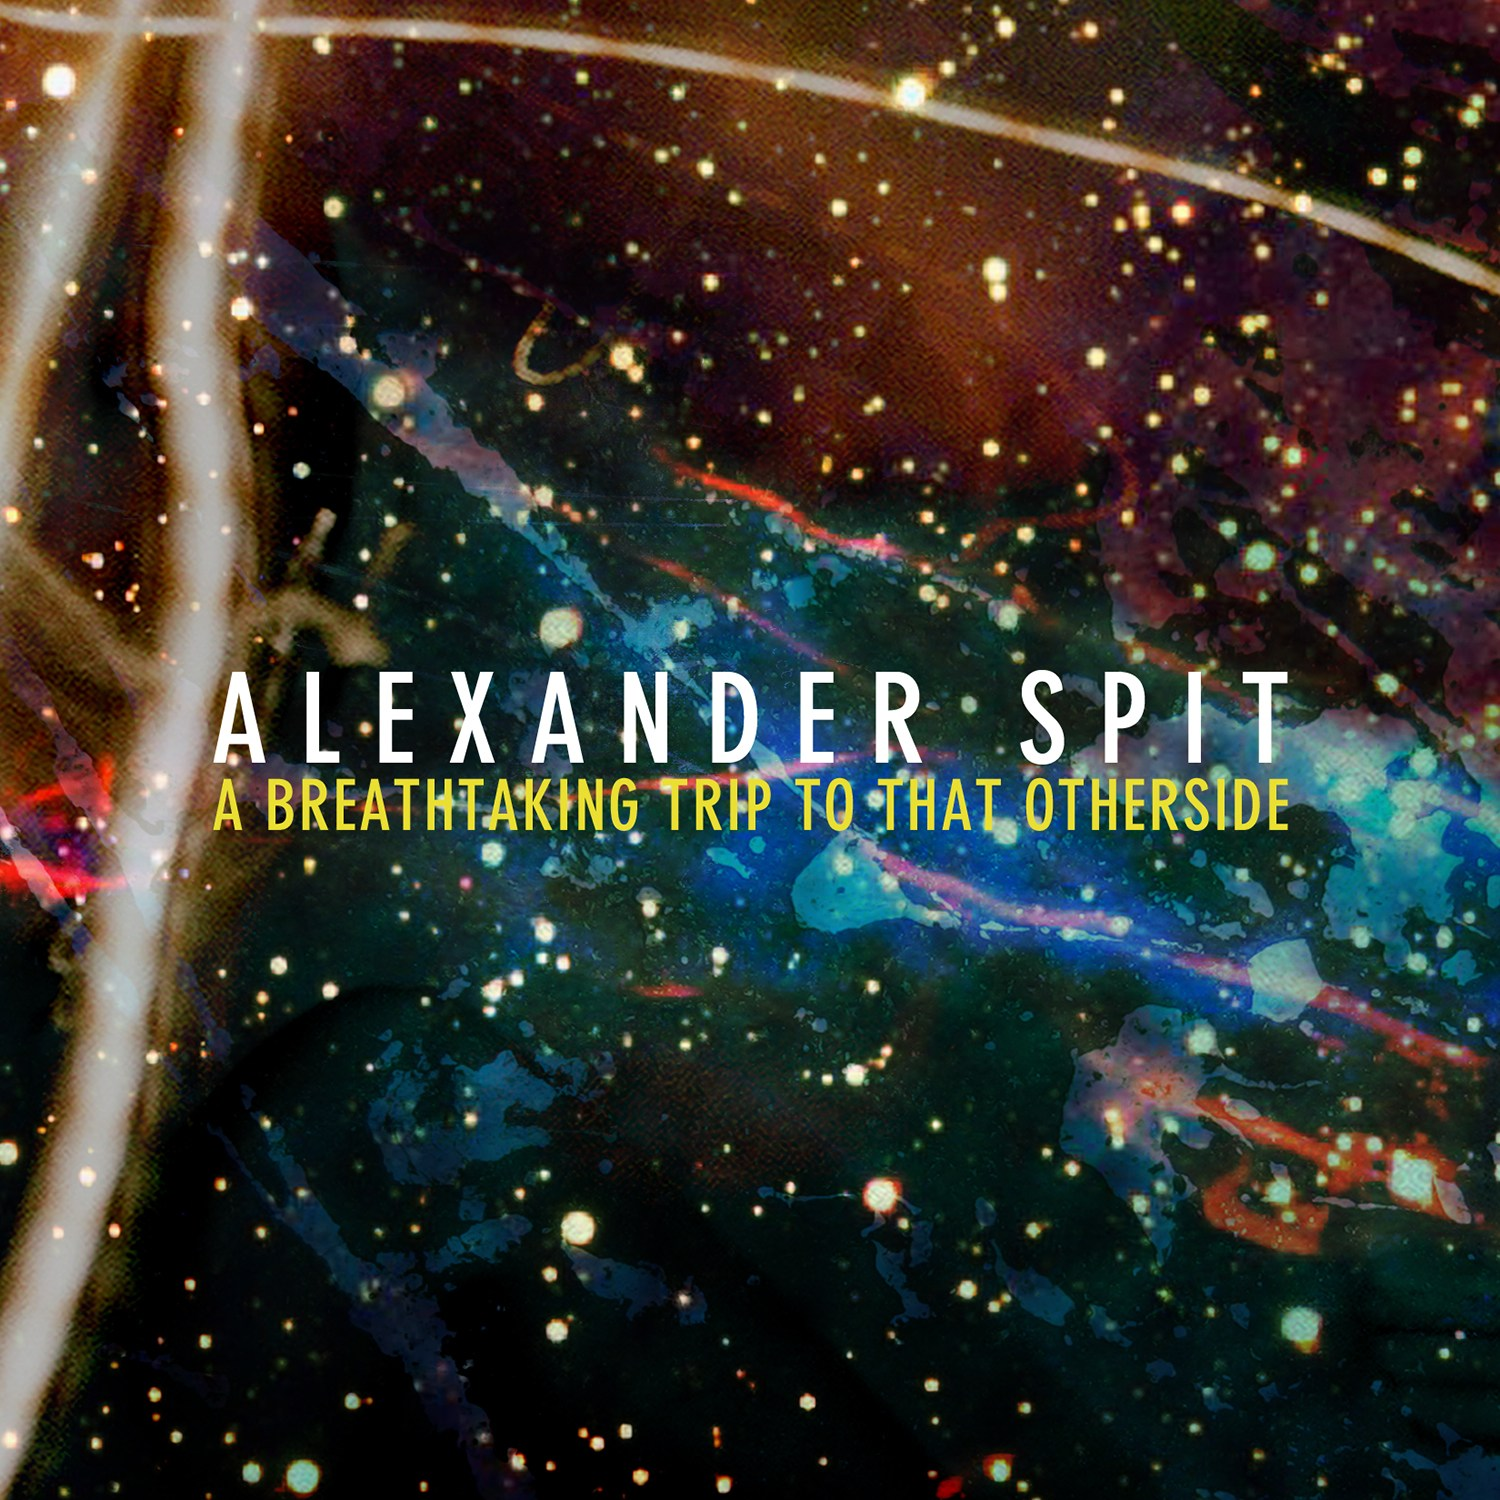 Alexander Spit - A Breathtaking Trip To That Otherside1